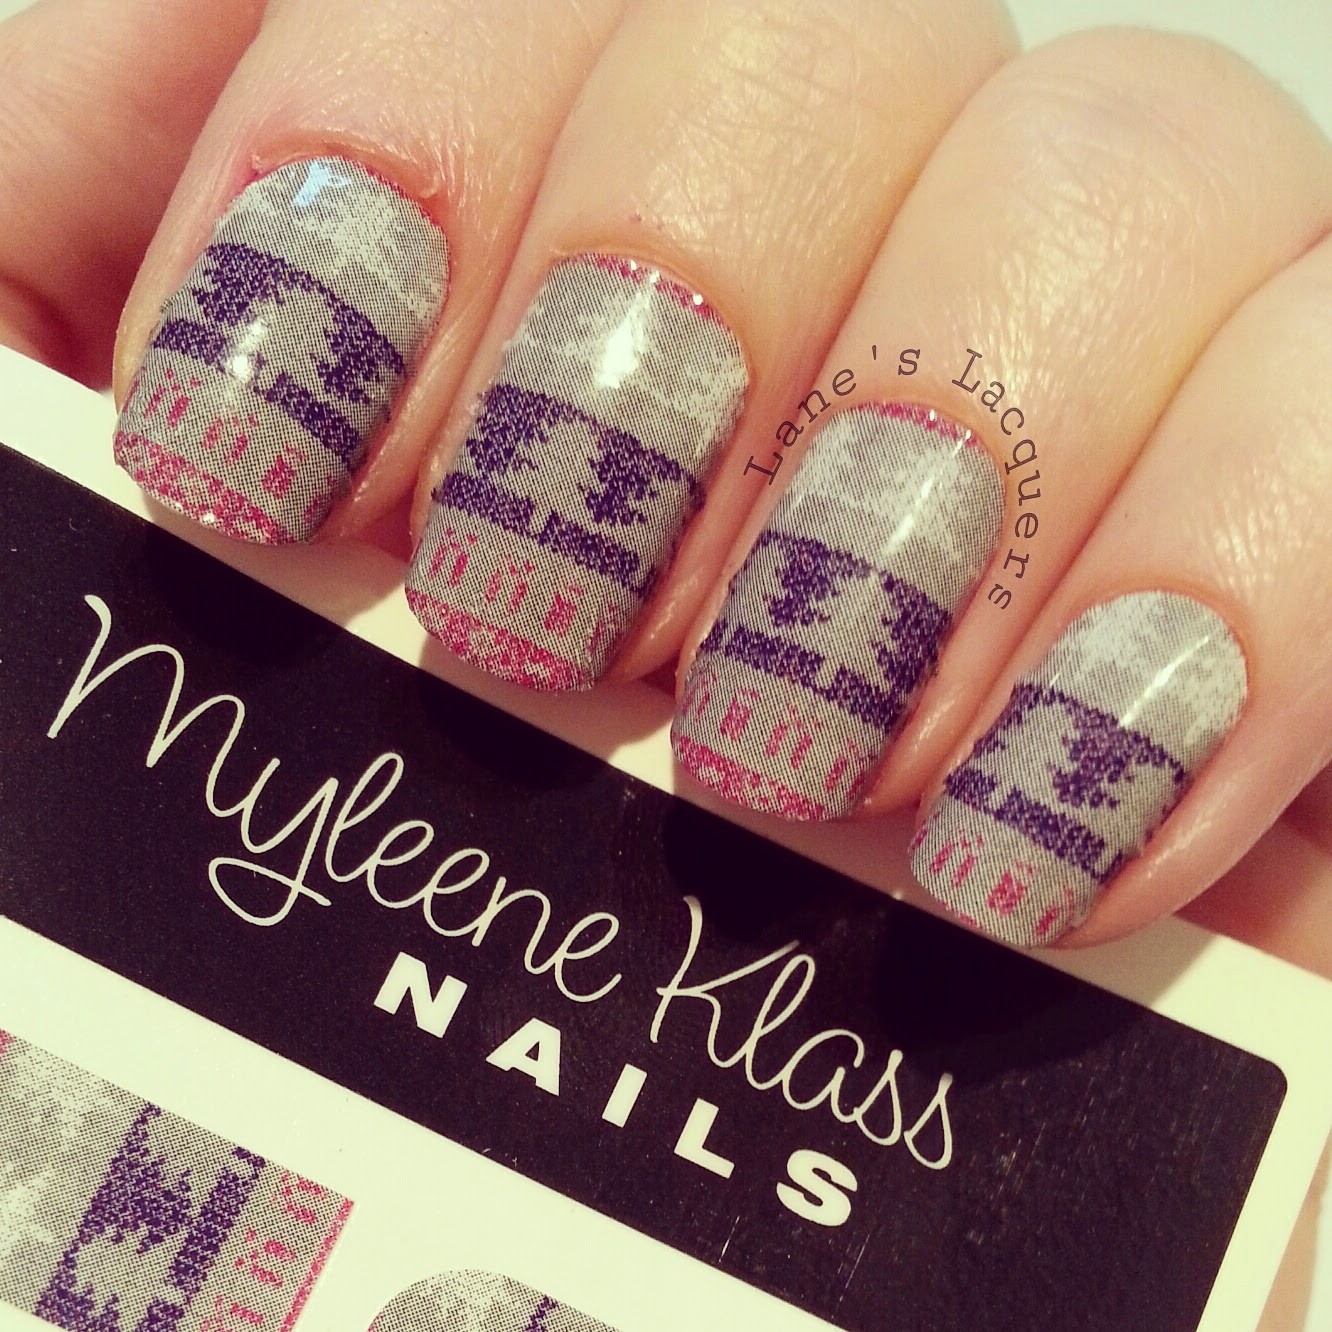 myleen-klass-christmas-jumper-nail-art-stickers-manicure (2)